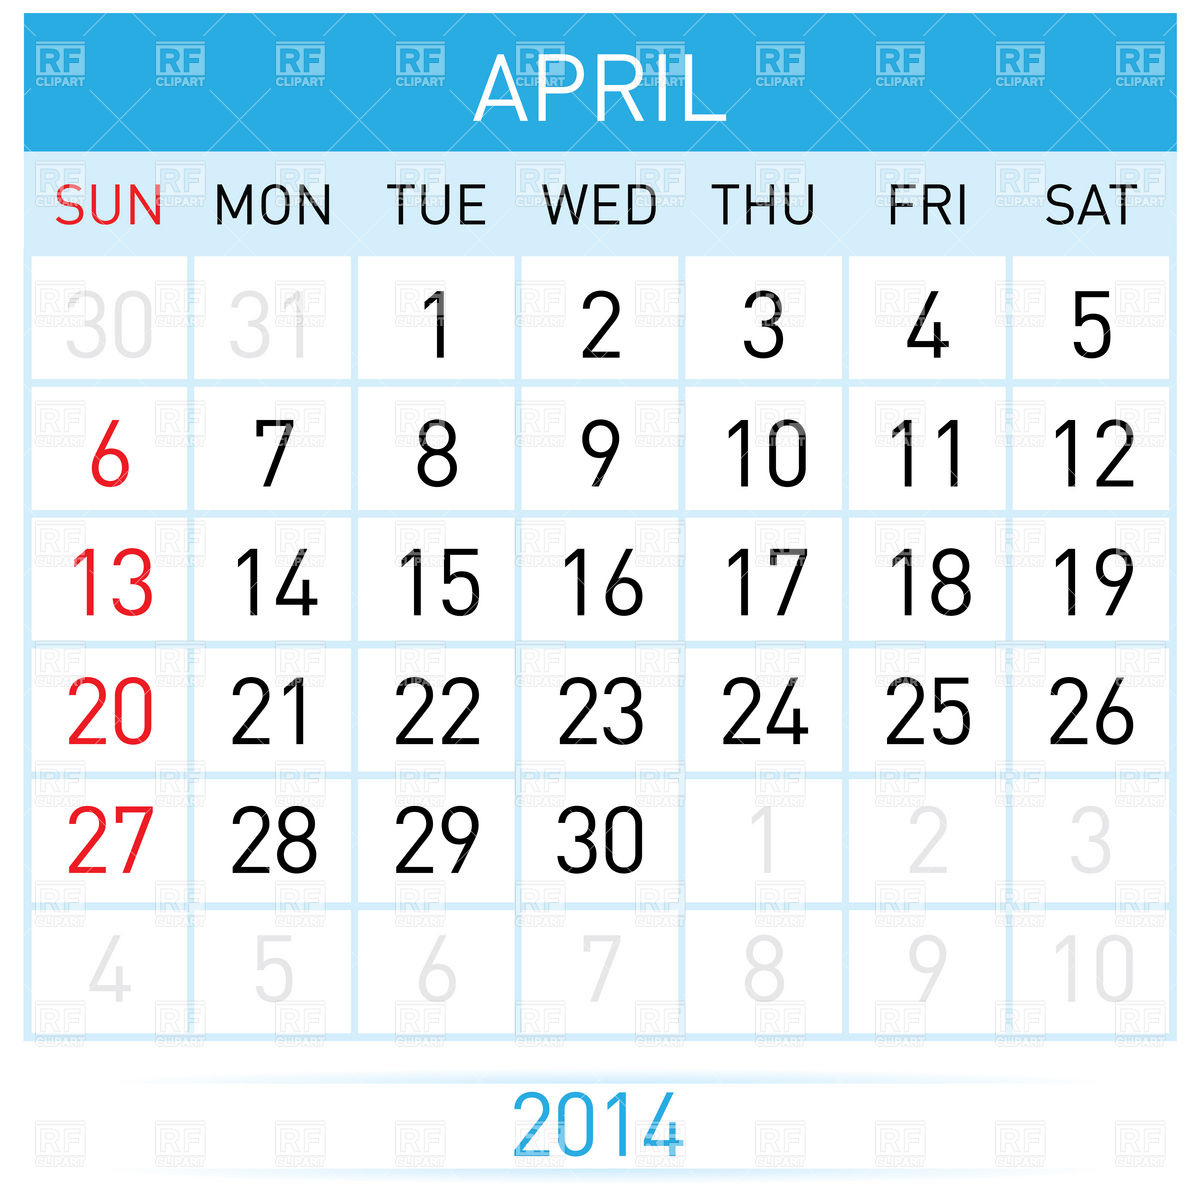 April 2014 calendar clipart svg freeuse library April 2014 month calendar Vector Image #7014 – RFclipart svg freeuse library